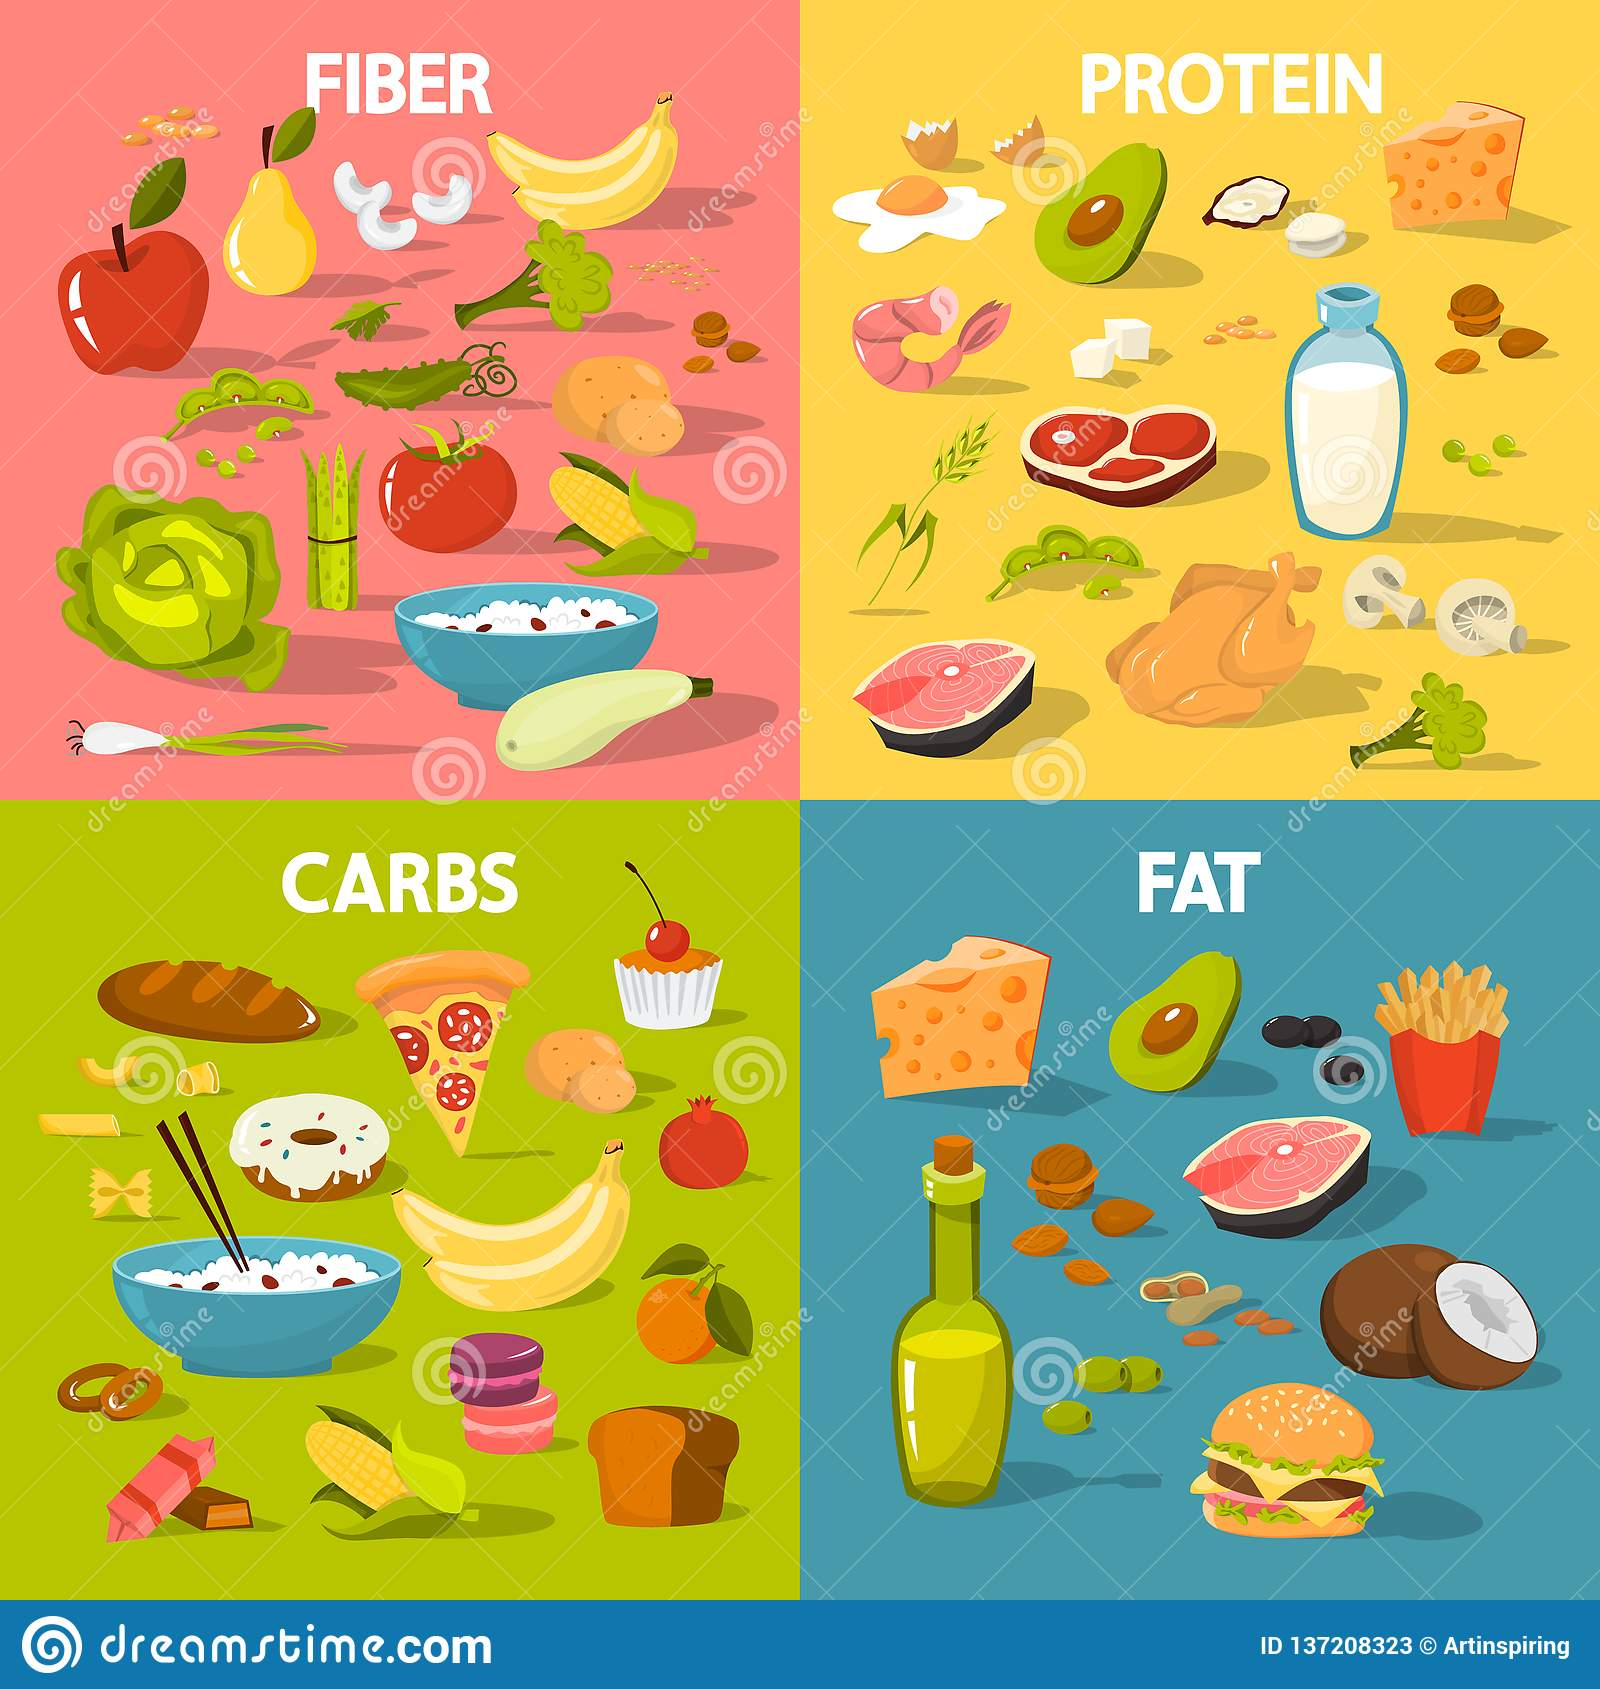 Food Groups Set Protein And Fiber Food Stock Vector